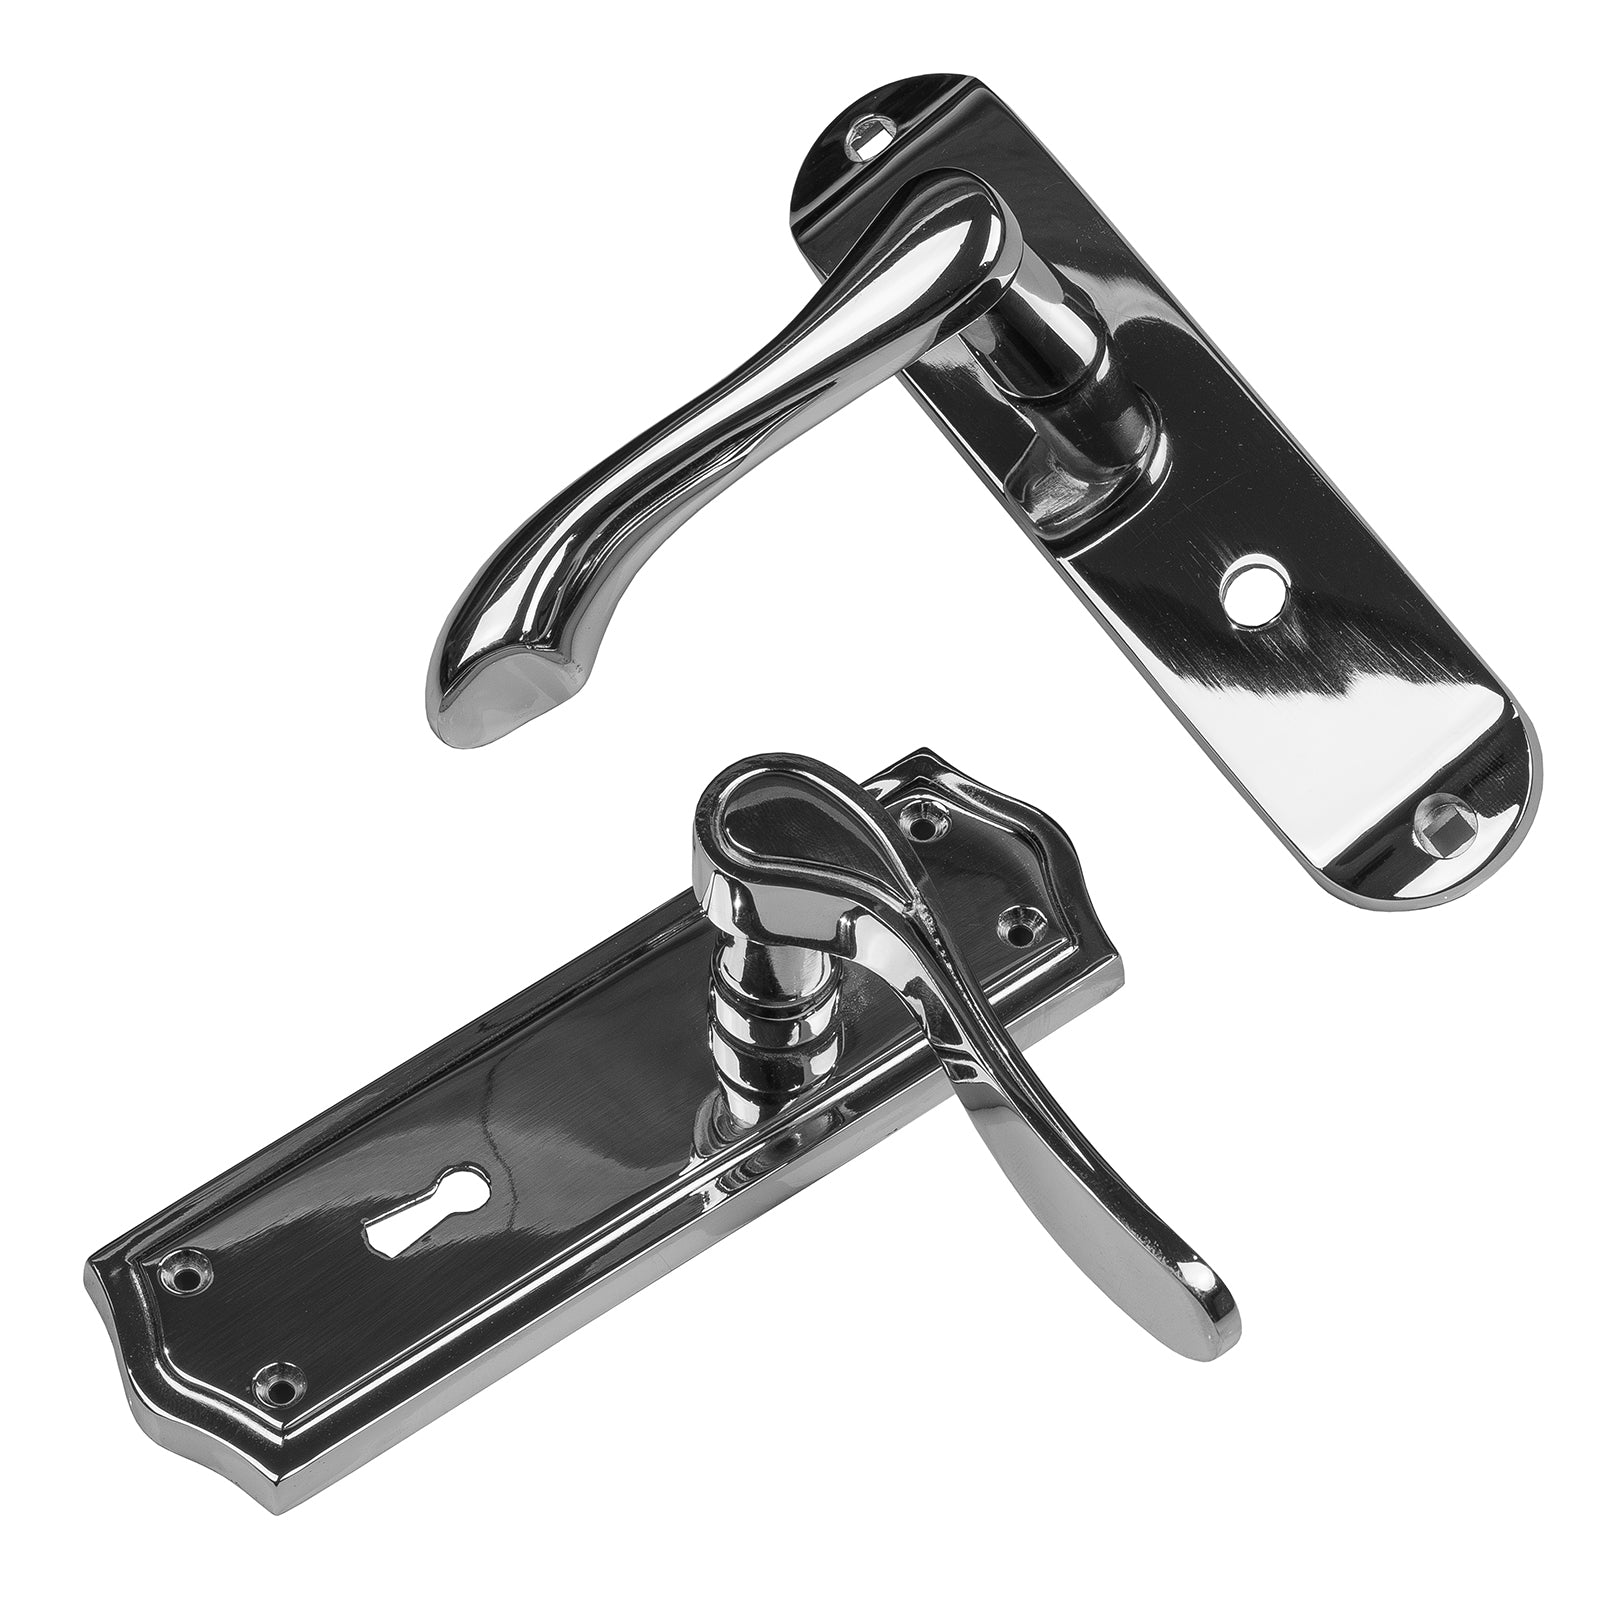 Chrome Lever Door Handles, Lock, Latch and Bathroom